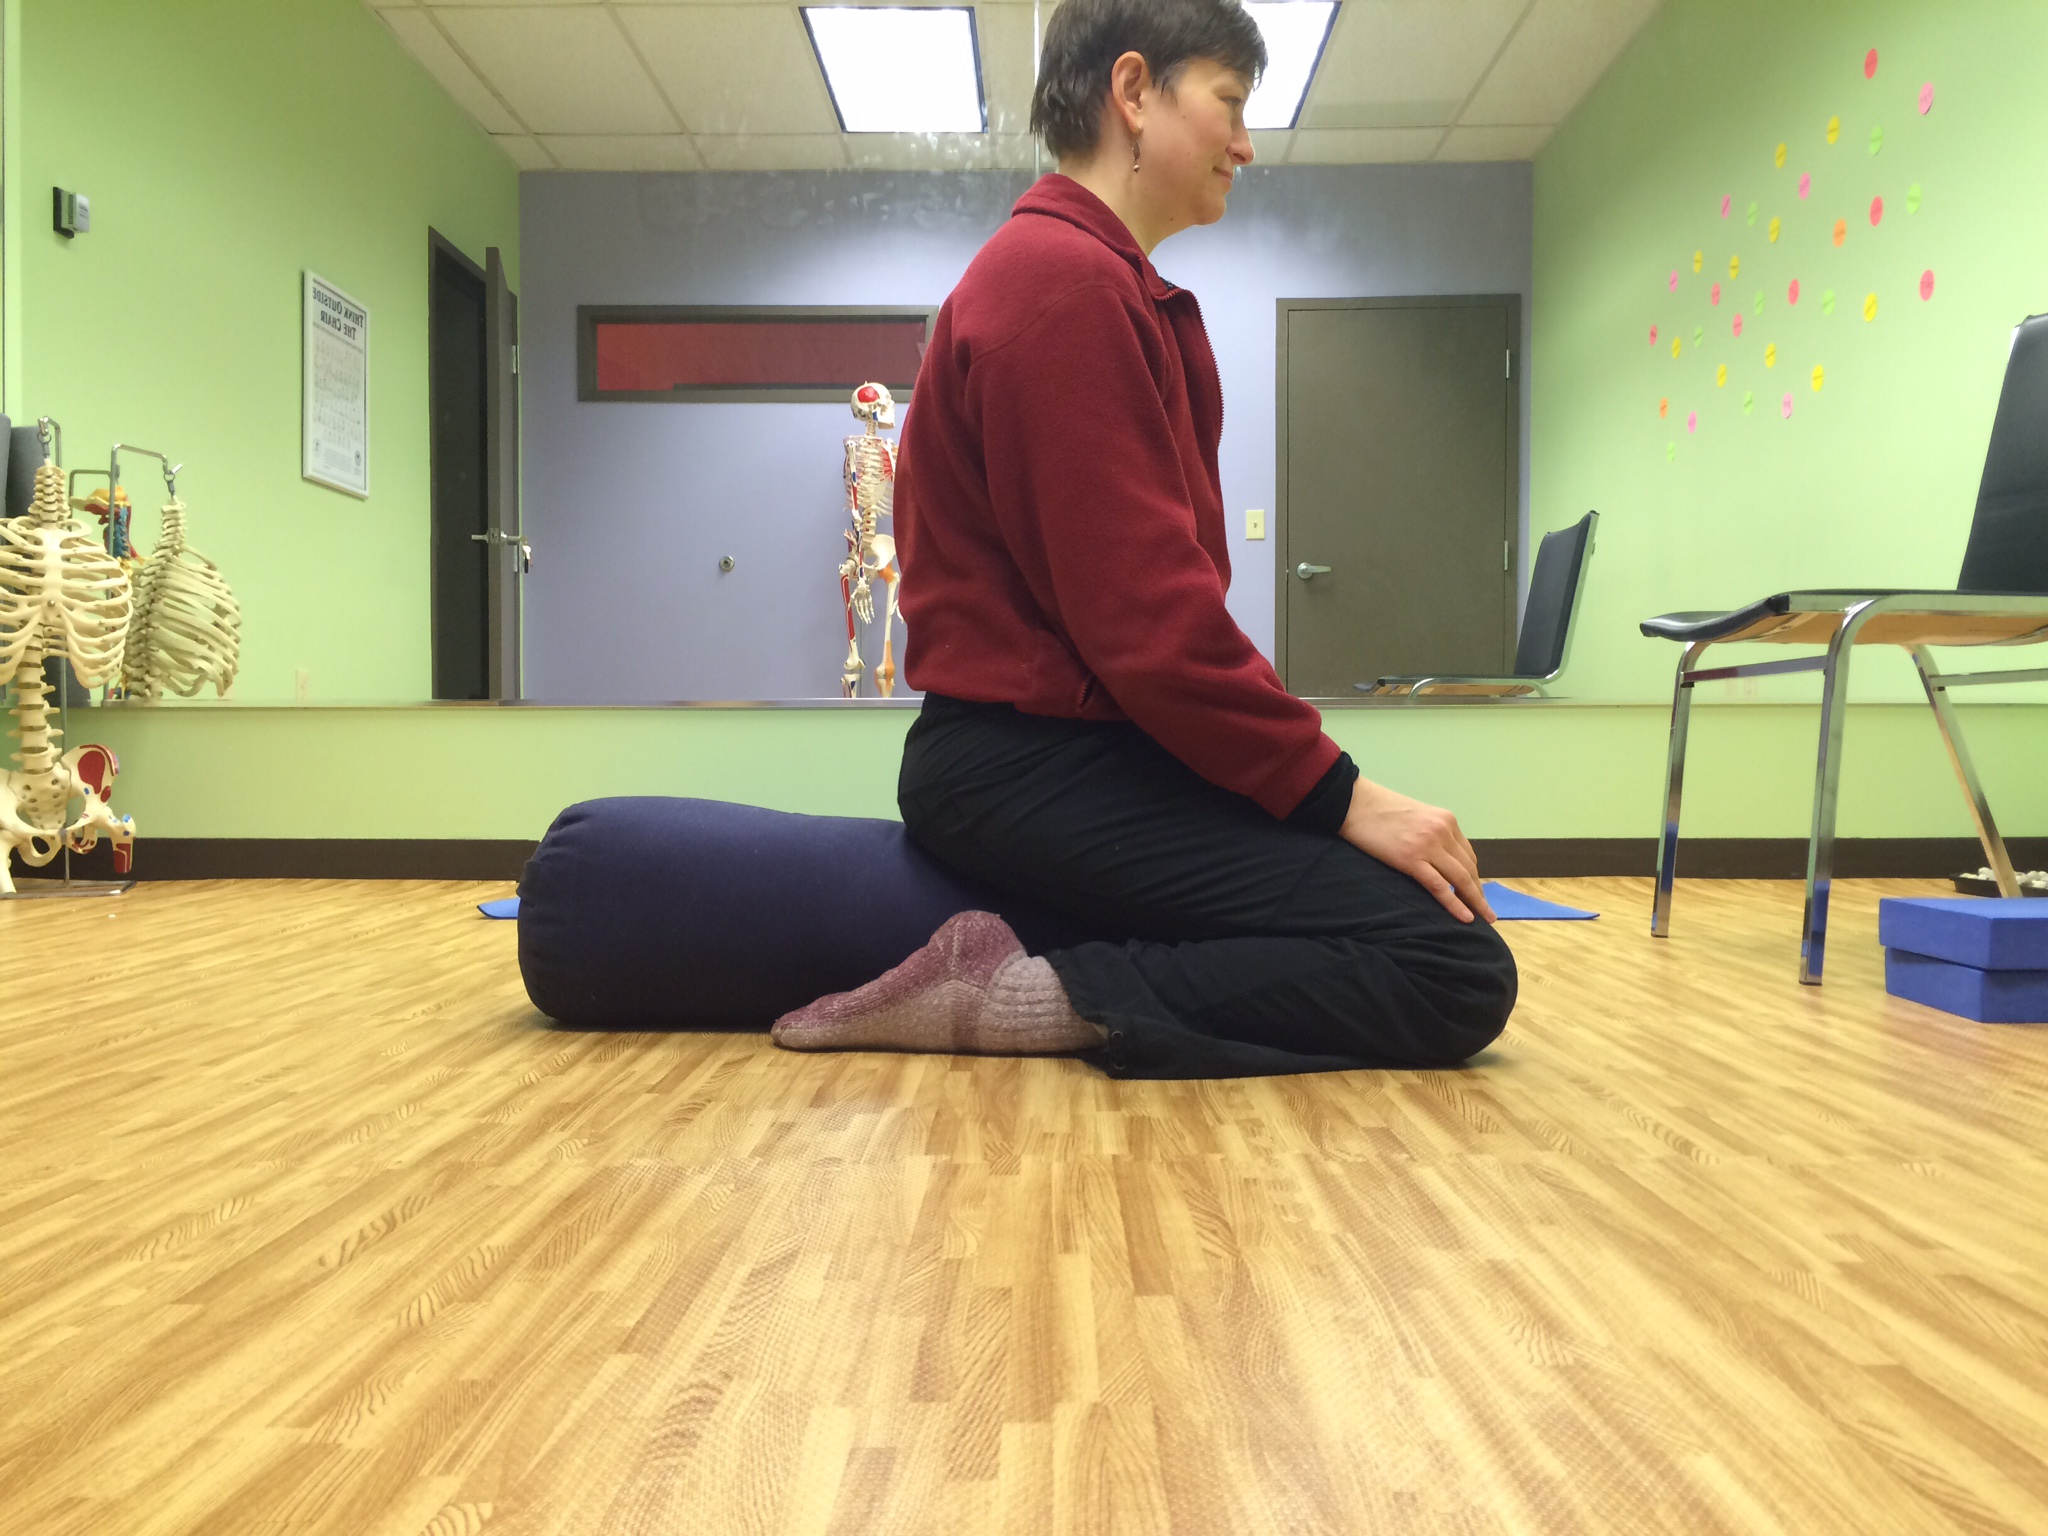 Stretch your quads! If you don't have a yoga bolster you could also use a couple of pillows.